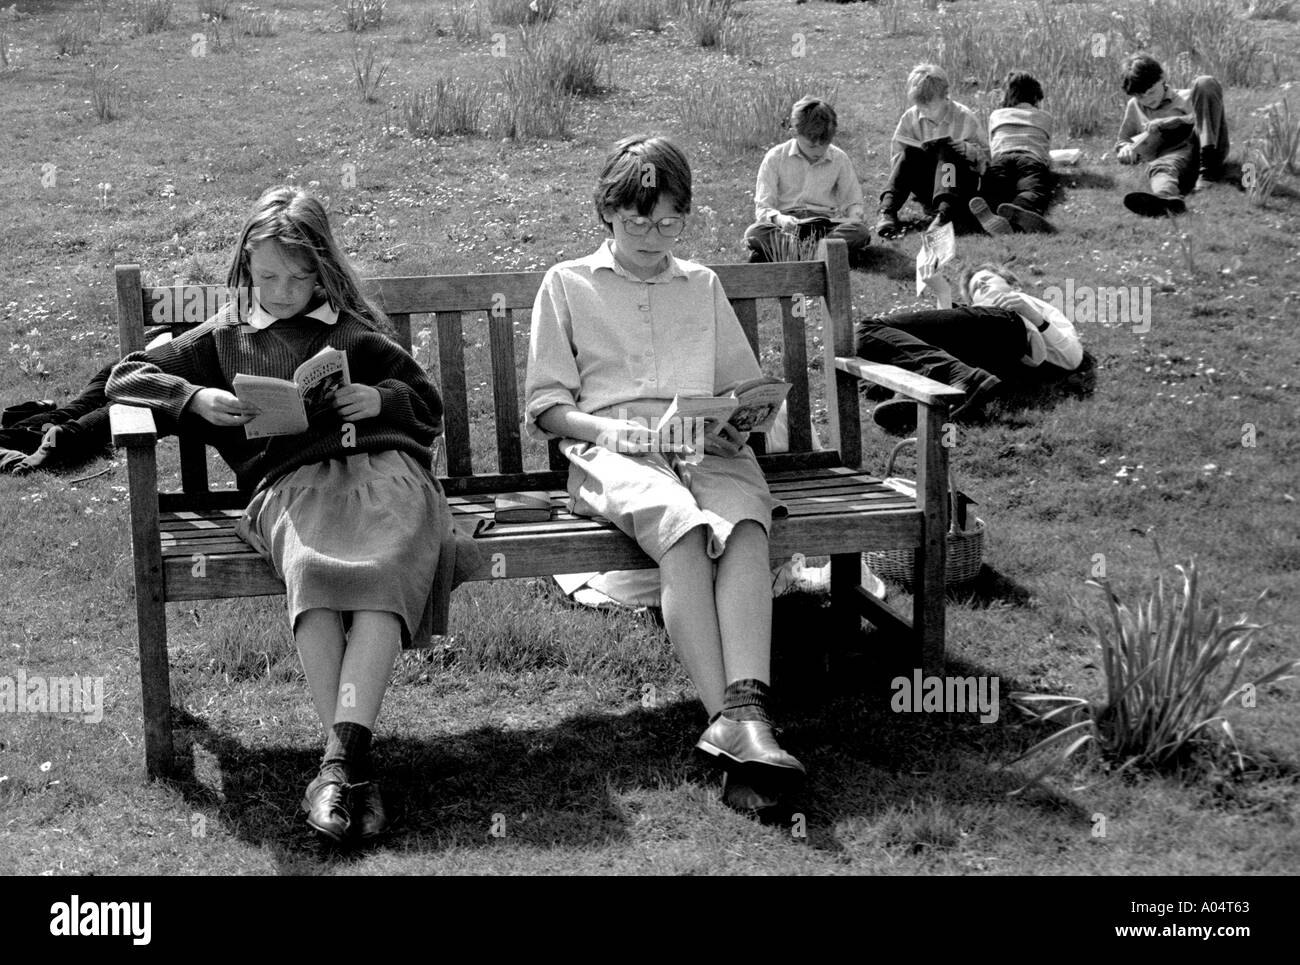 Kids doing their homework sitting on bench outdoors at private boarding school - Stock Image